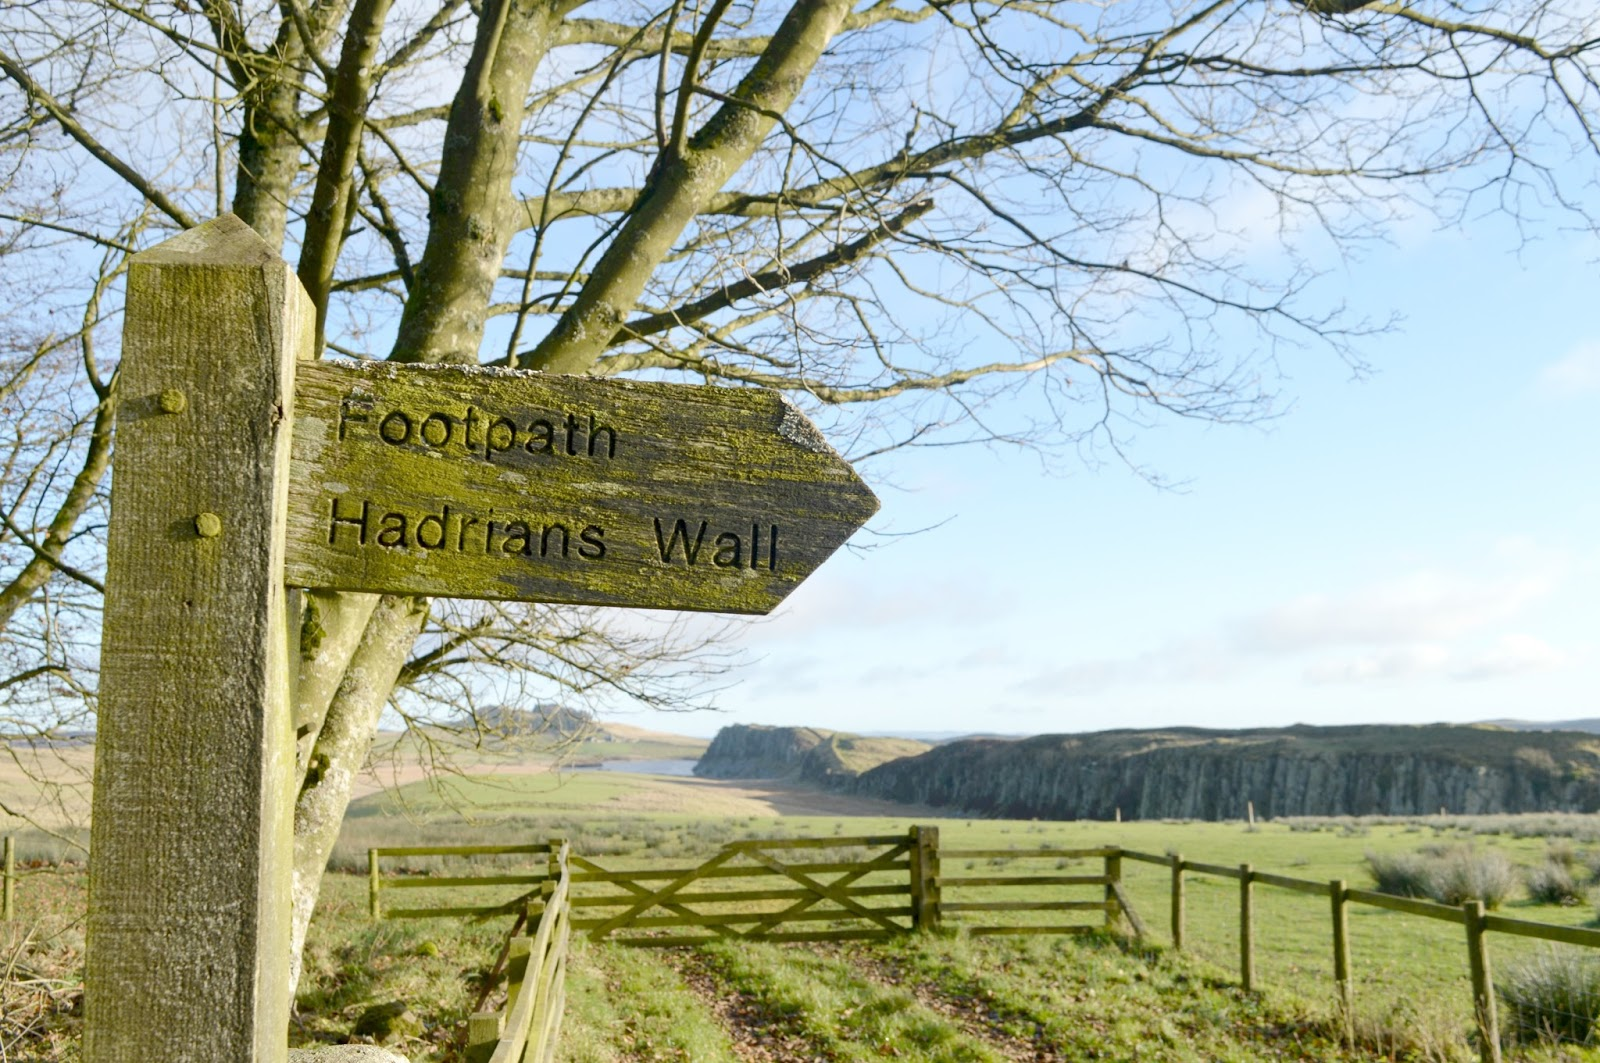 Walking Hadrian's Wall in Winter - Footpath